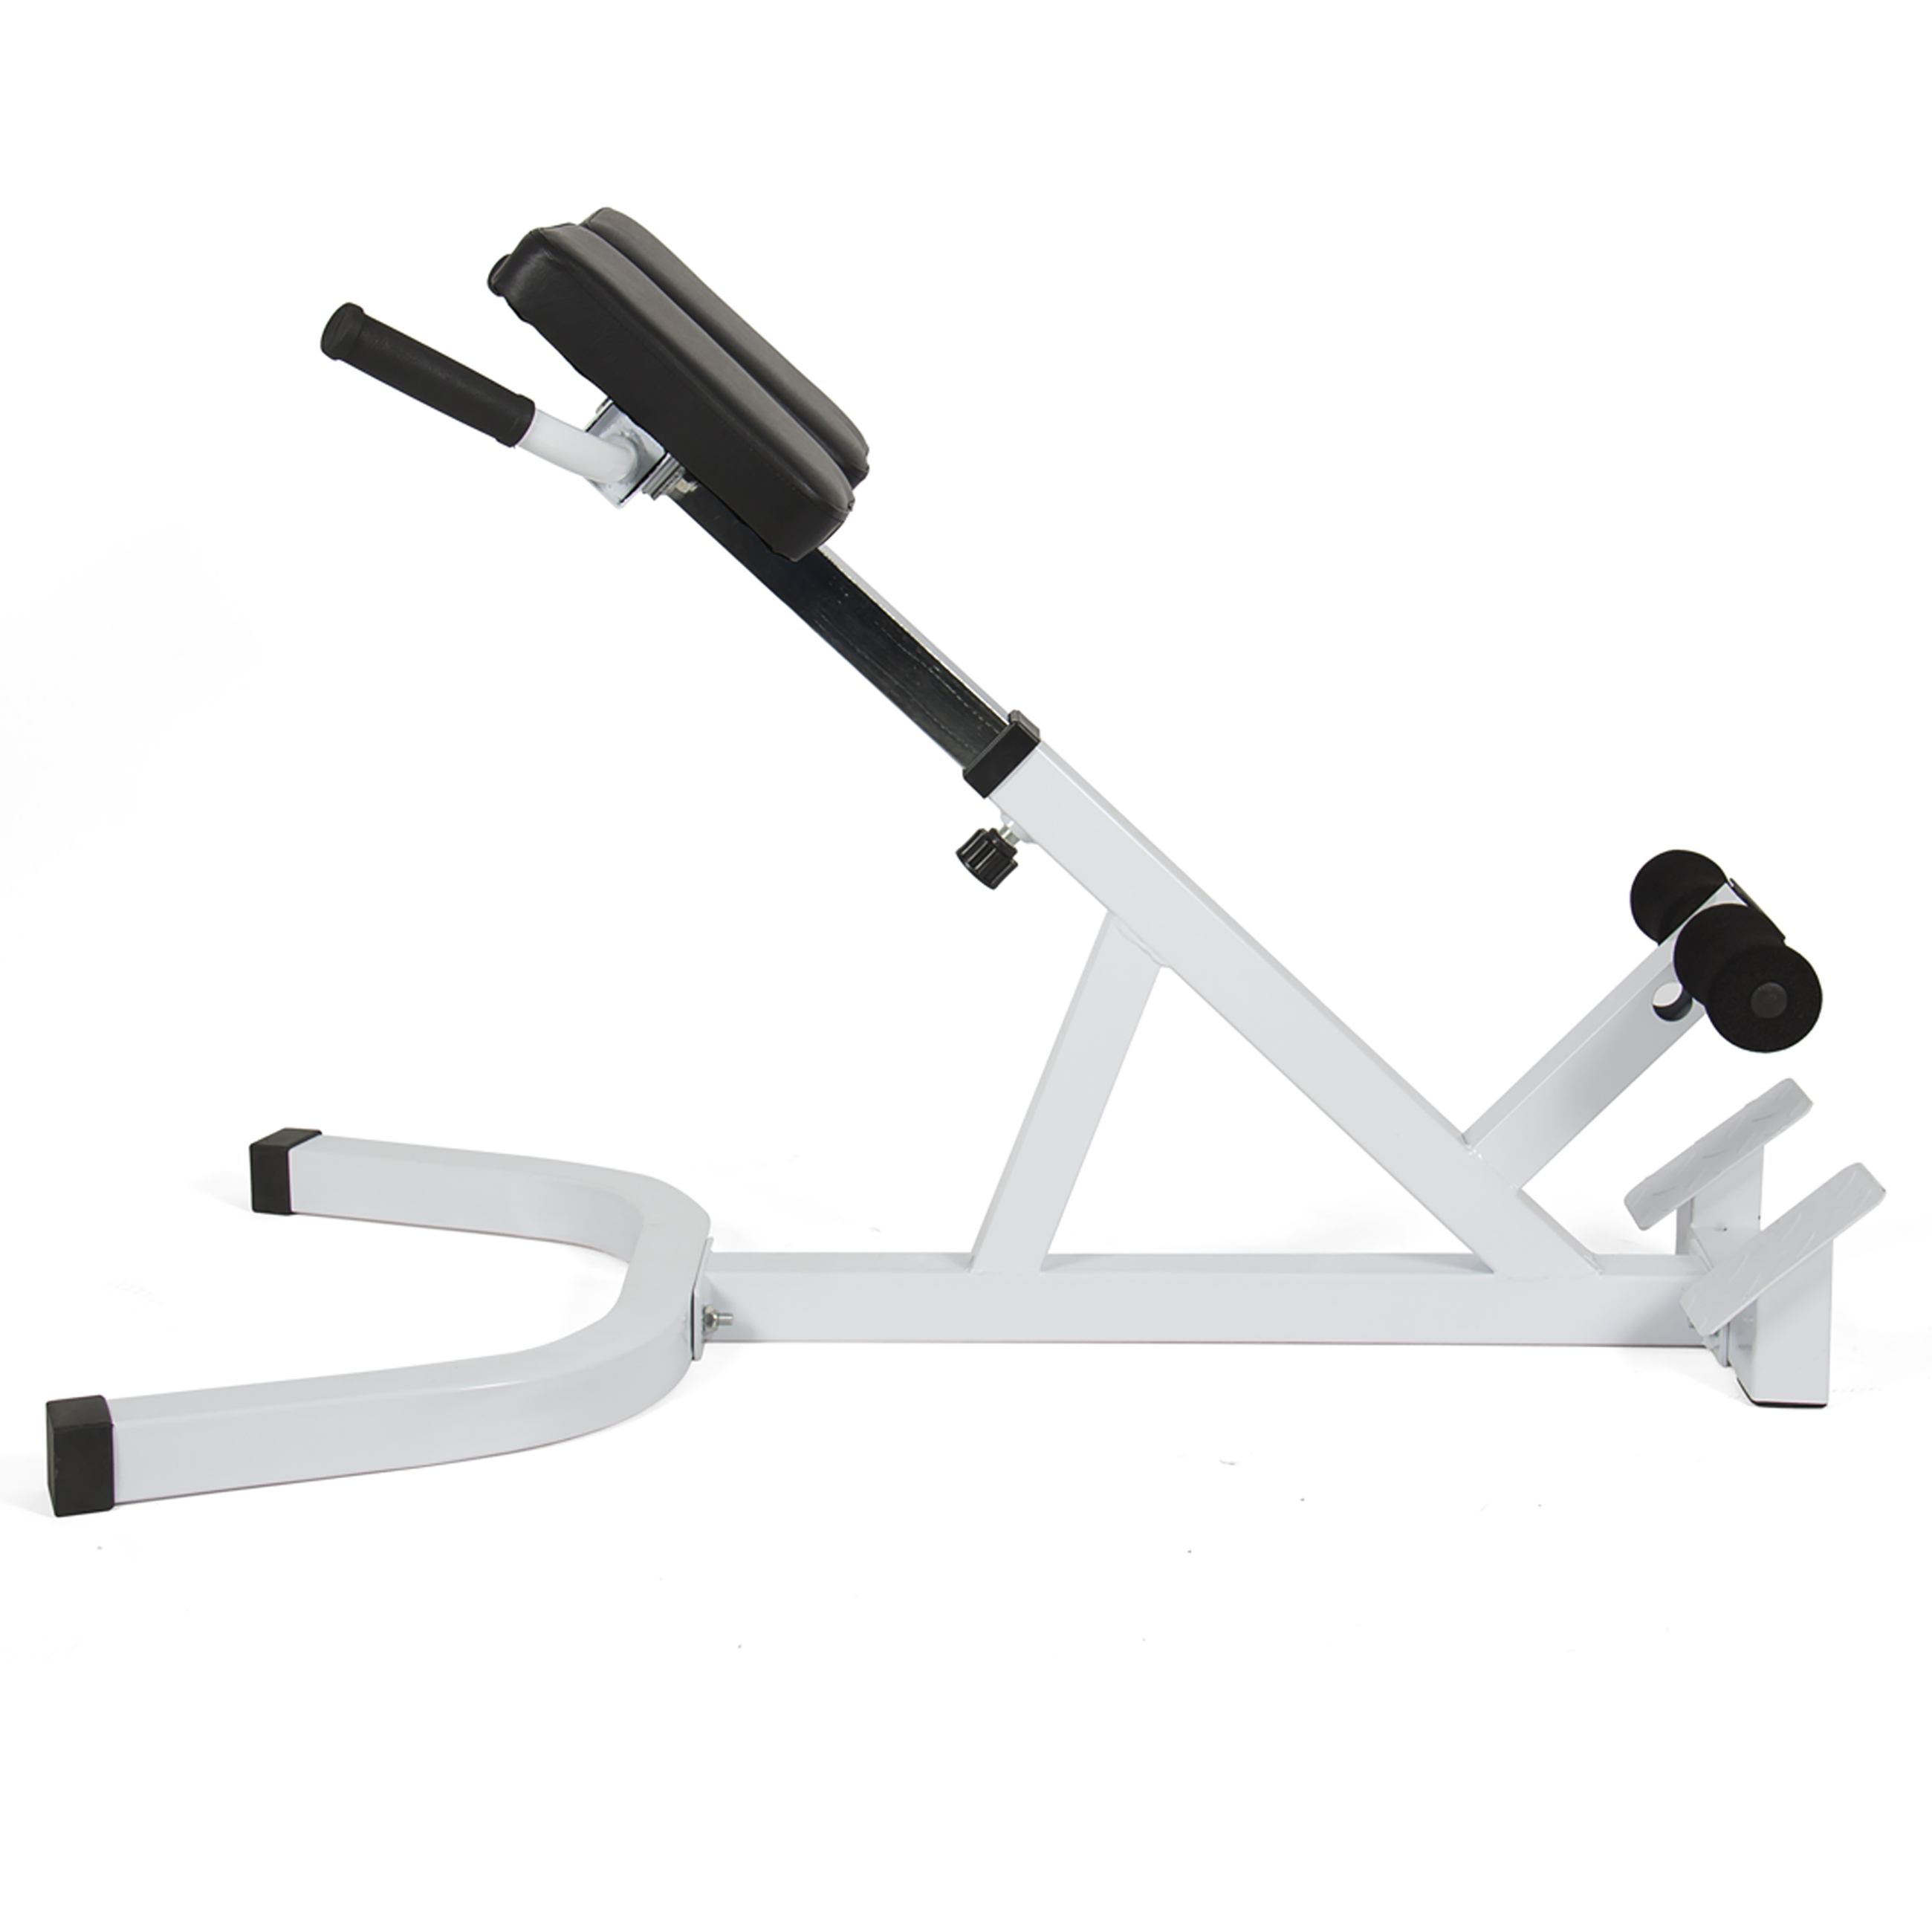 gym quality roman chair covers for sale near me best choice products adjustable ab bench w 45 degree hyperextension training exercise black gray walmart com